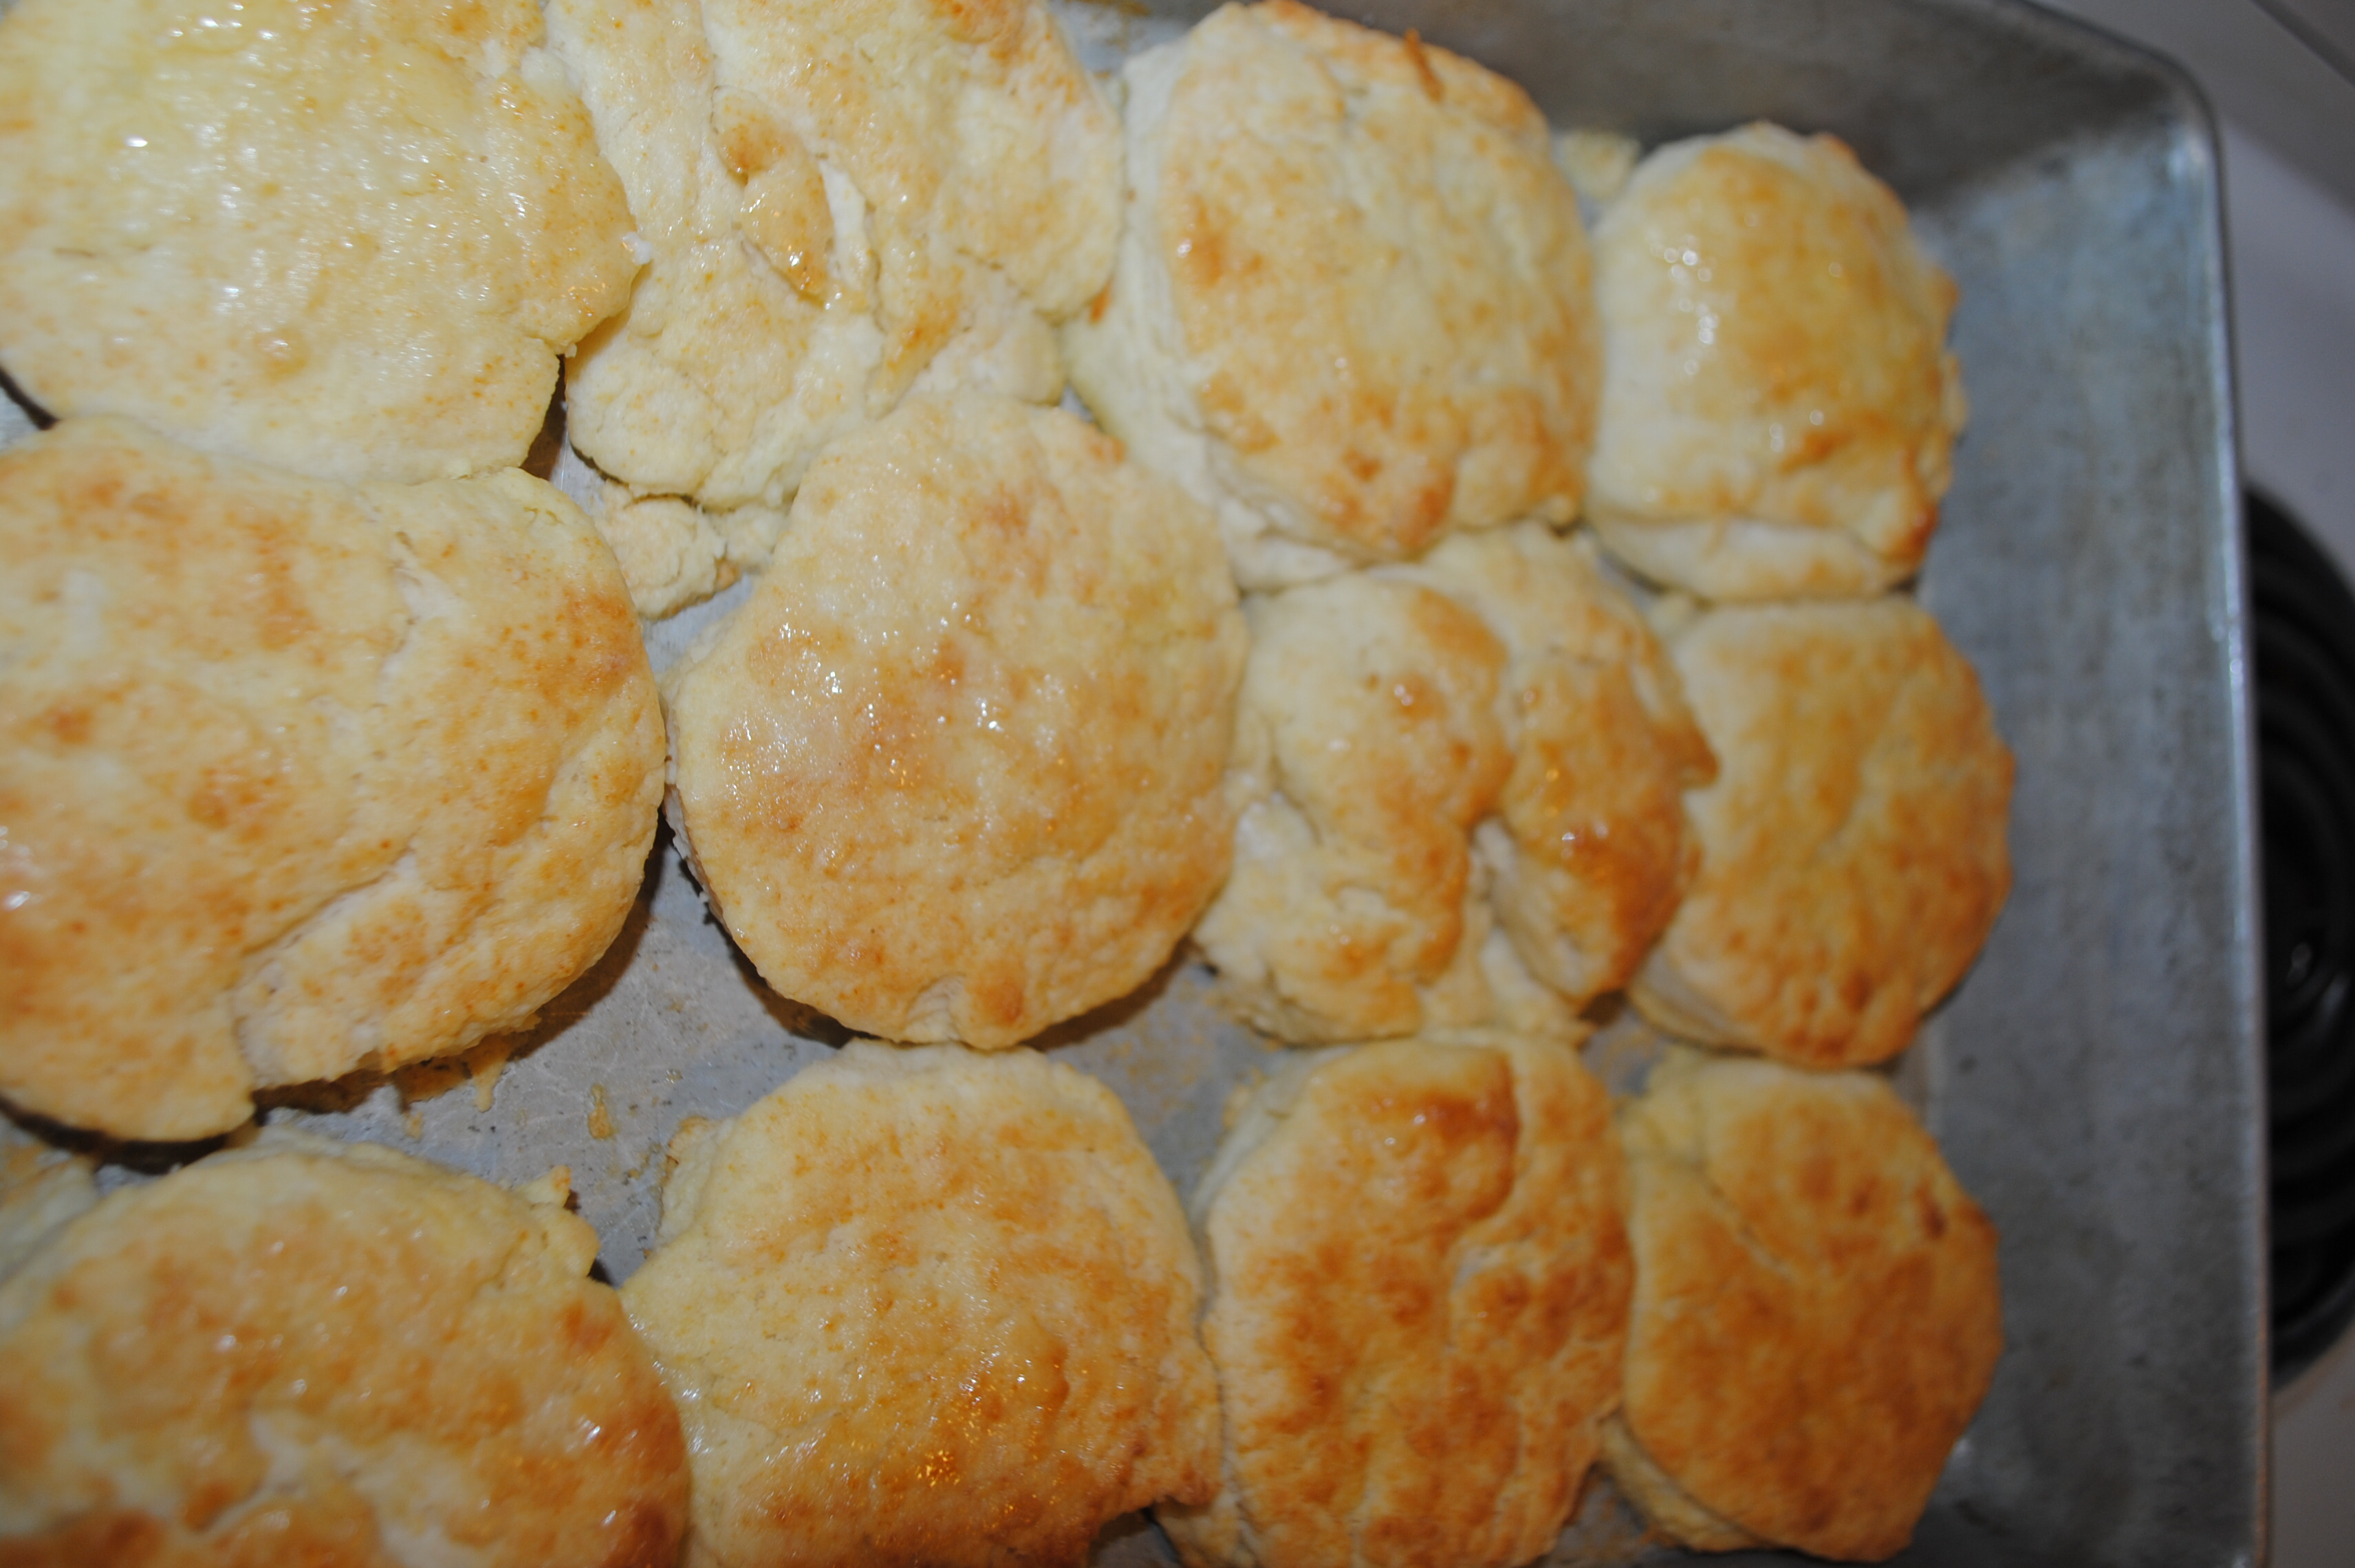 Hardees Biscuits